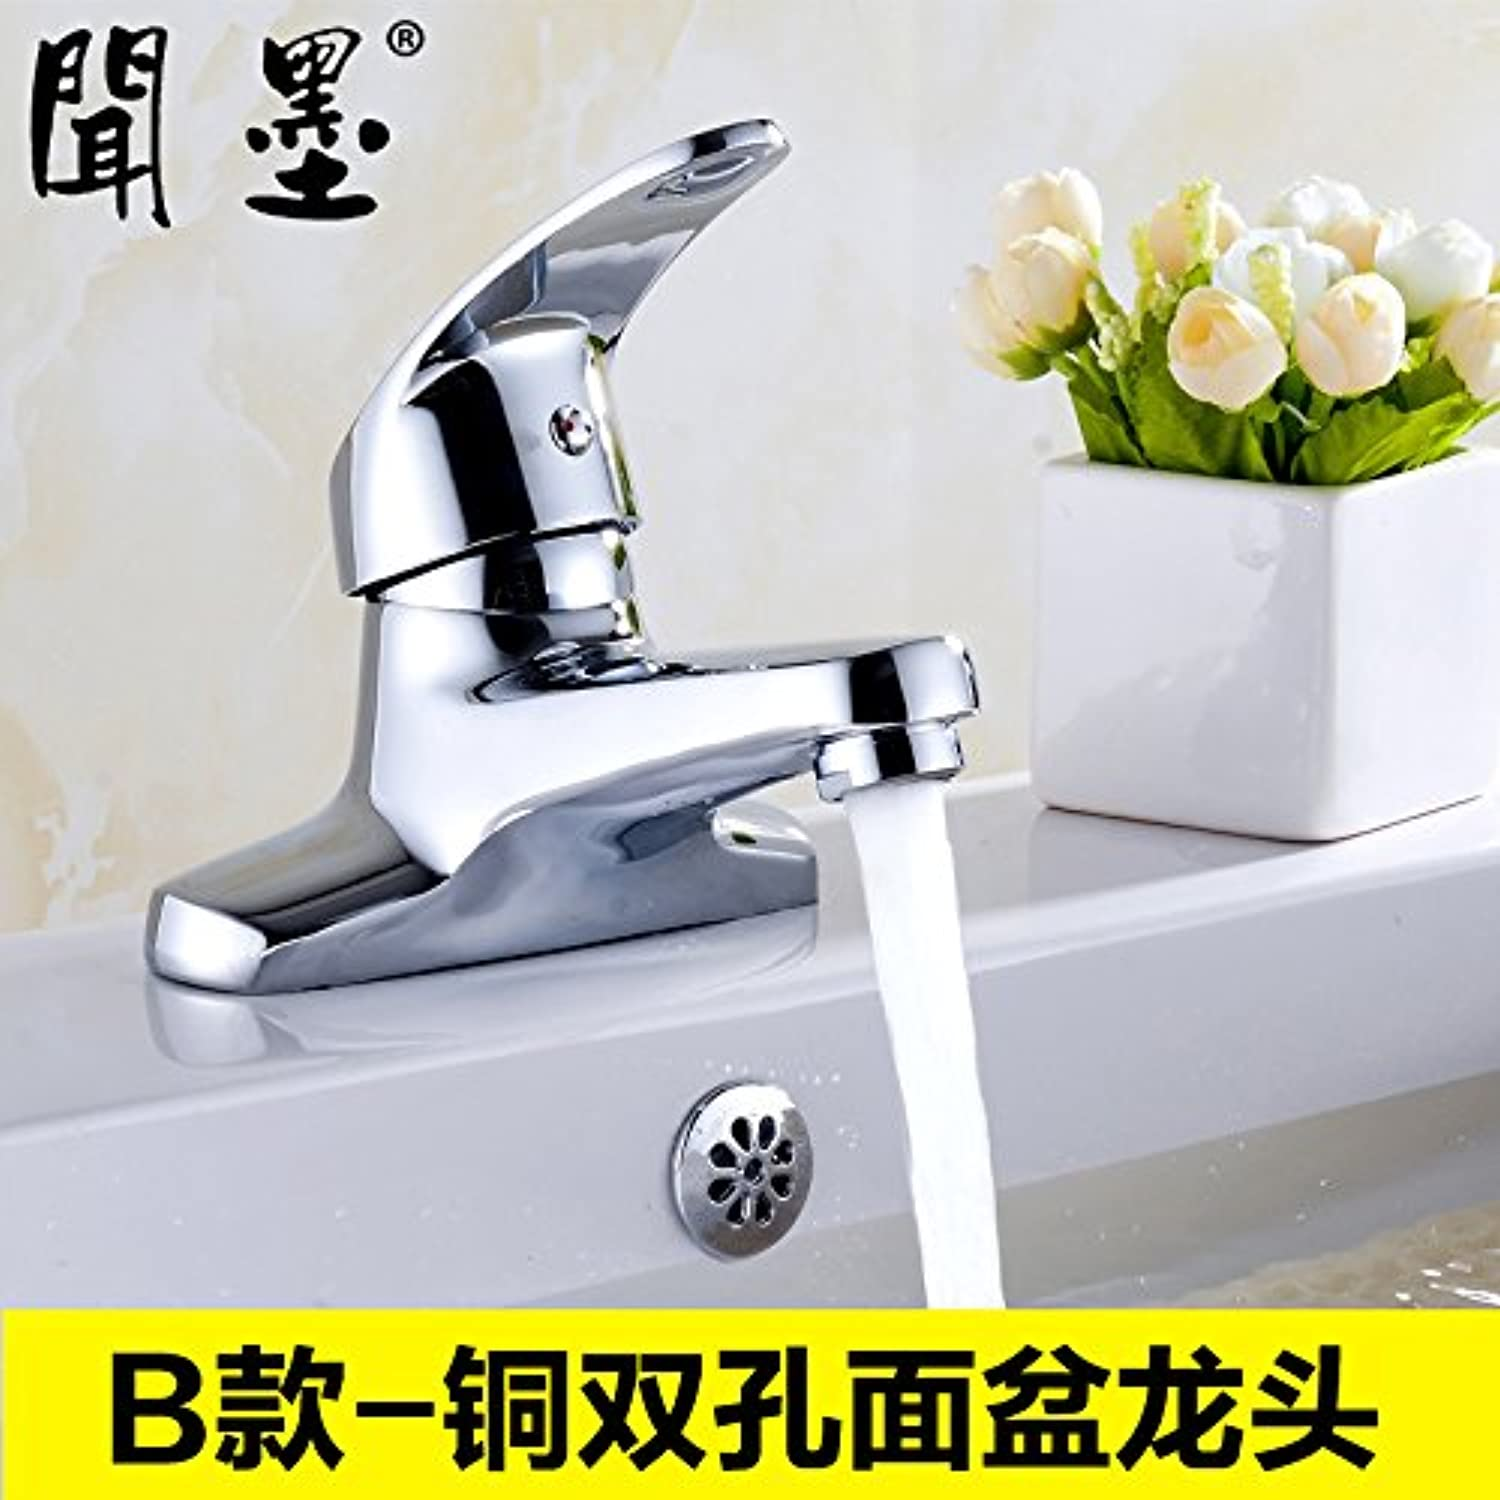 Gyps Faucet Single Lever Washbasin Mixer Tap Bathroom Sink Tap Hot and Cold Two Hole Mixer Tap Full Copper Basin Tap B Mixer Tap